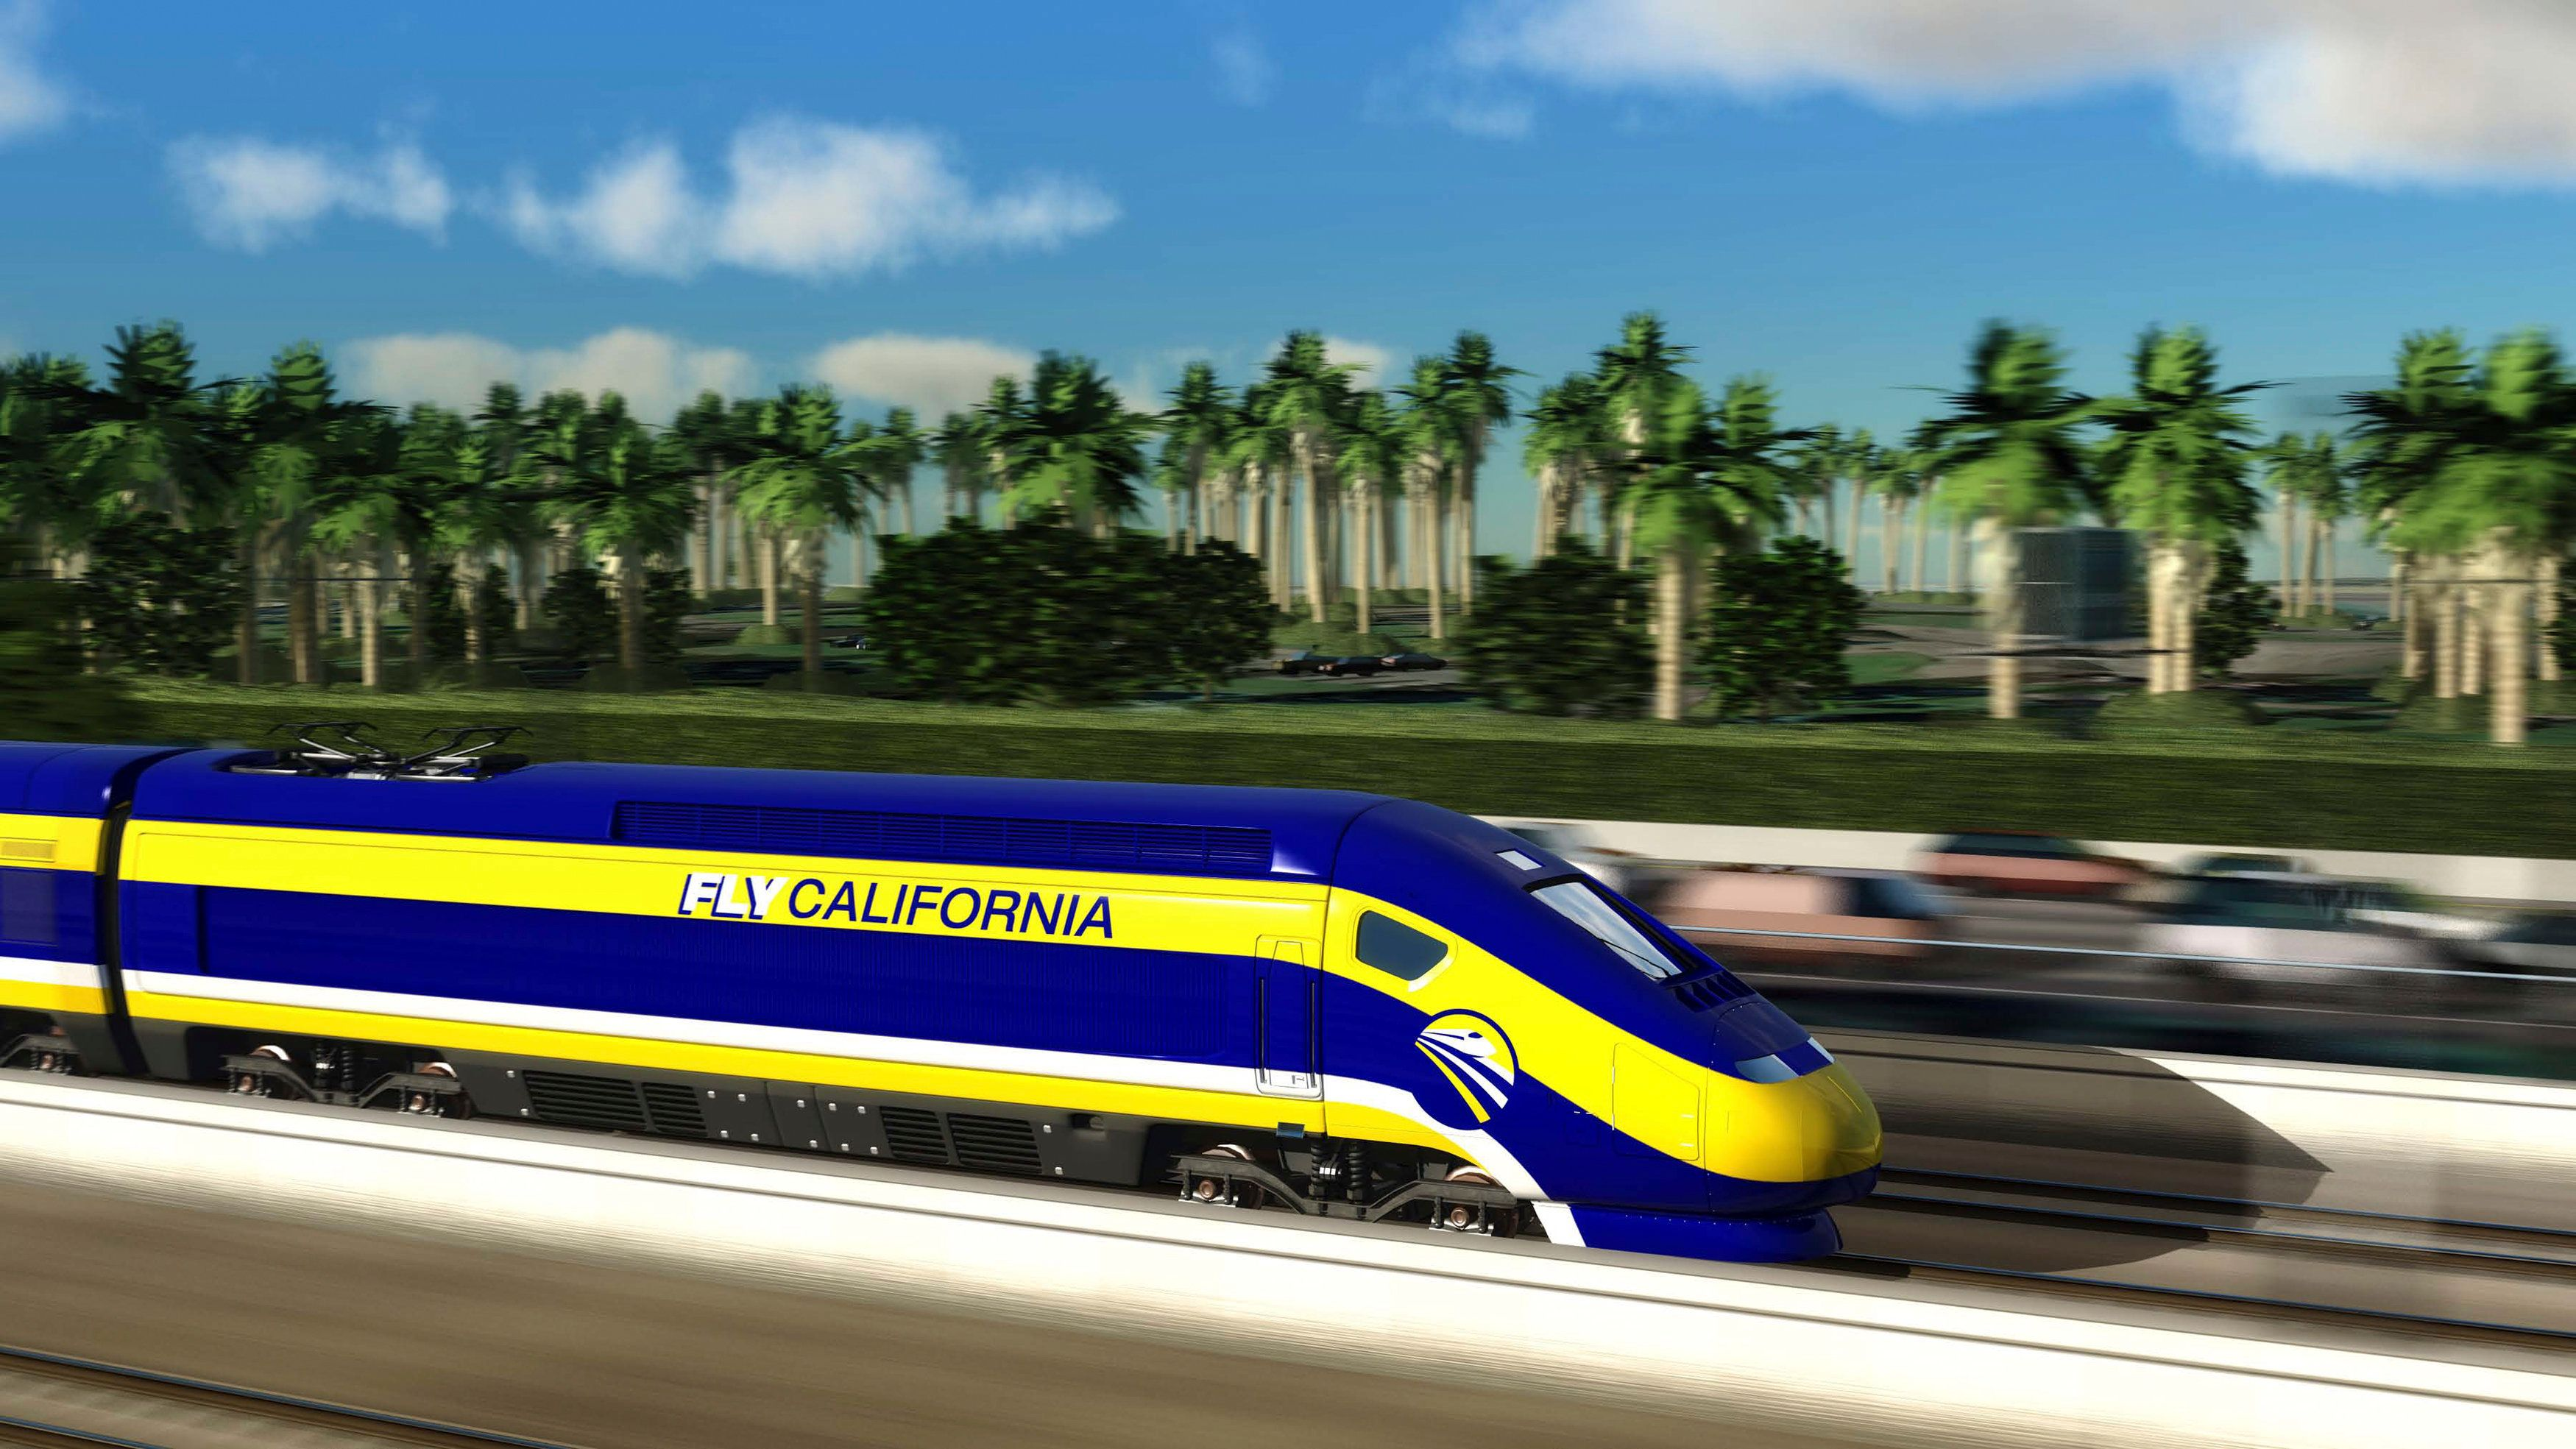 Trump Administration Rescinds Nearly $1 Billion In Funds For California High-Speed Rail